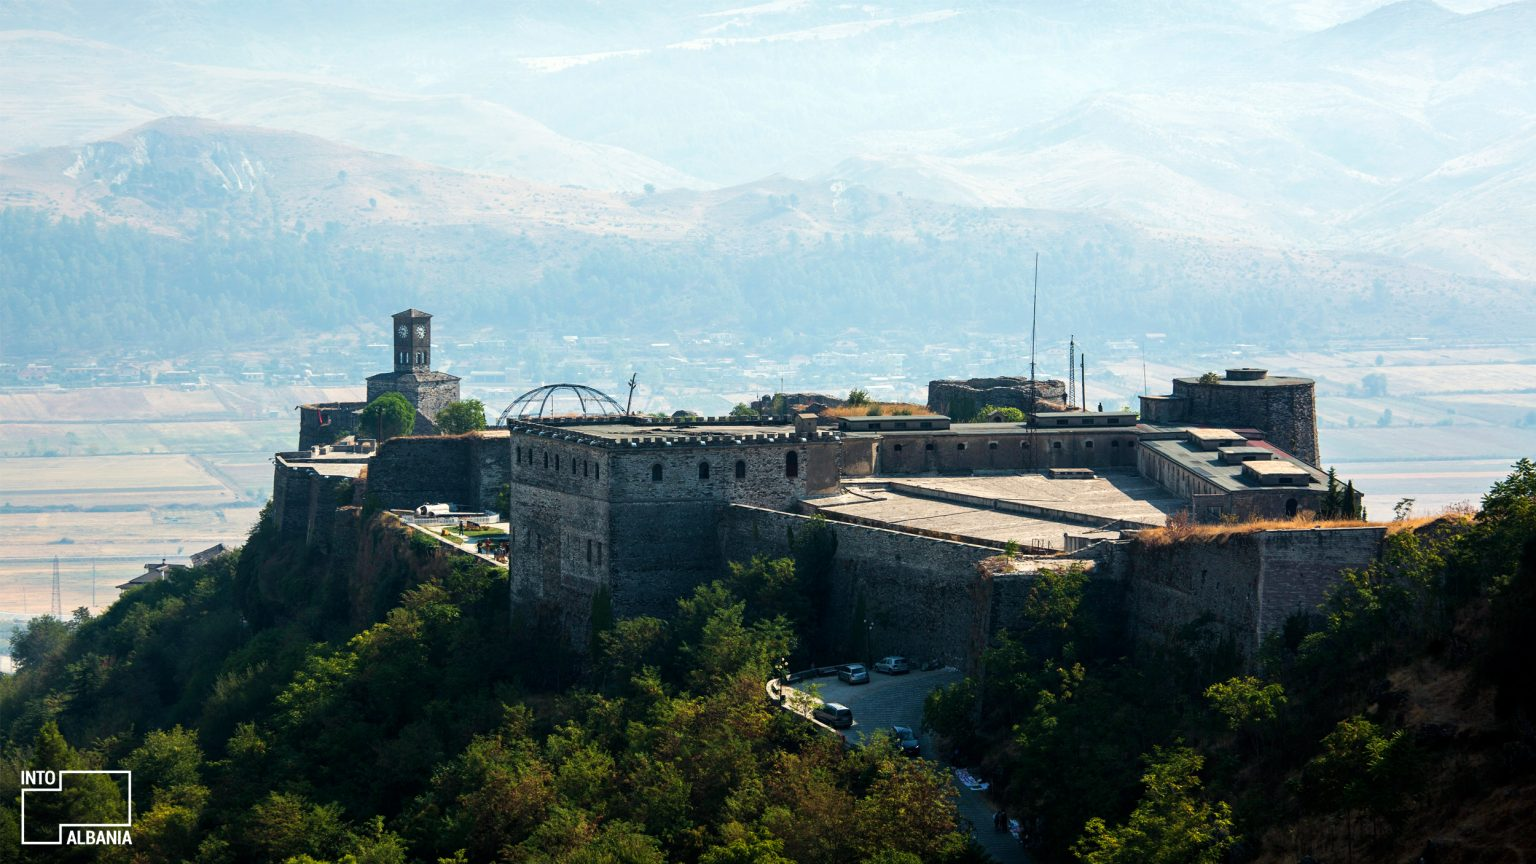 Castle of Gjirokastra, Courtesy of Egzon Bytyqi instagram.com/egzonbytyqiphoto/